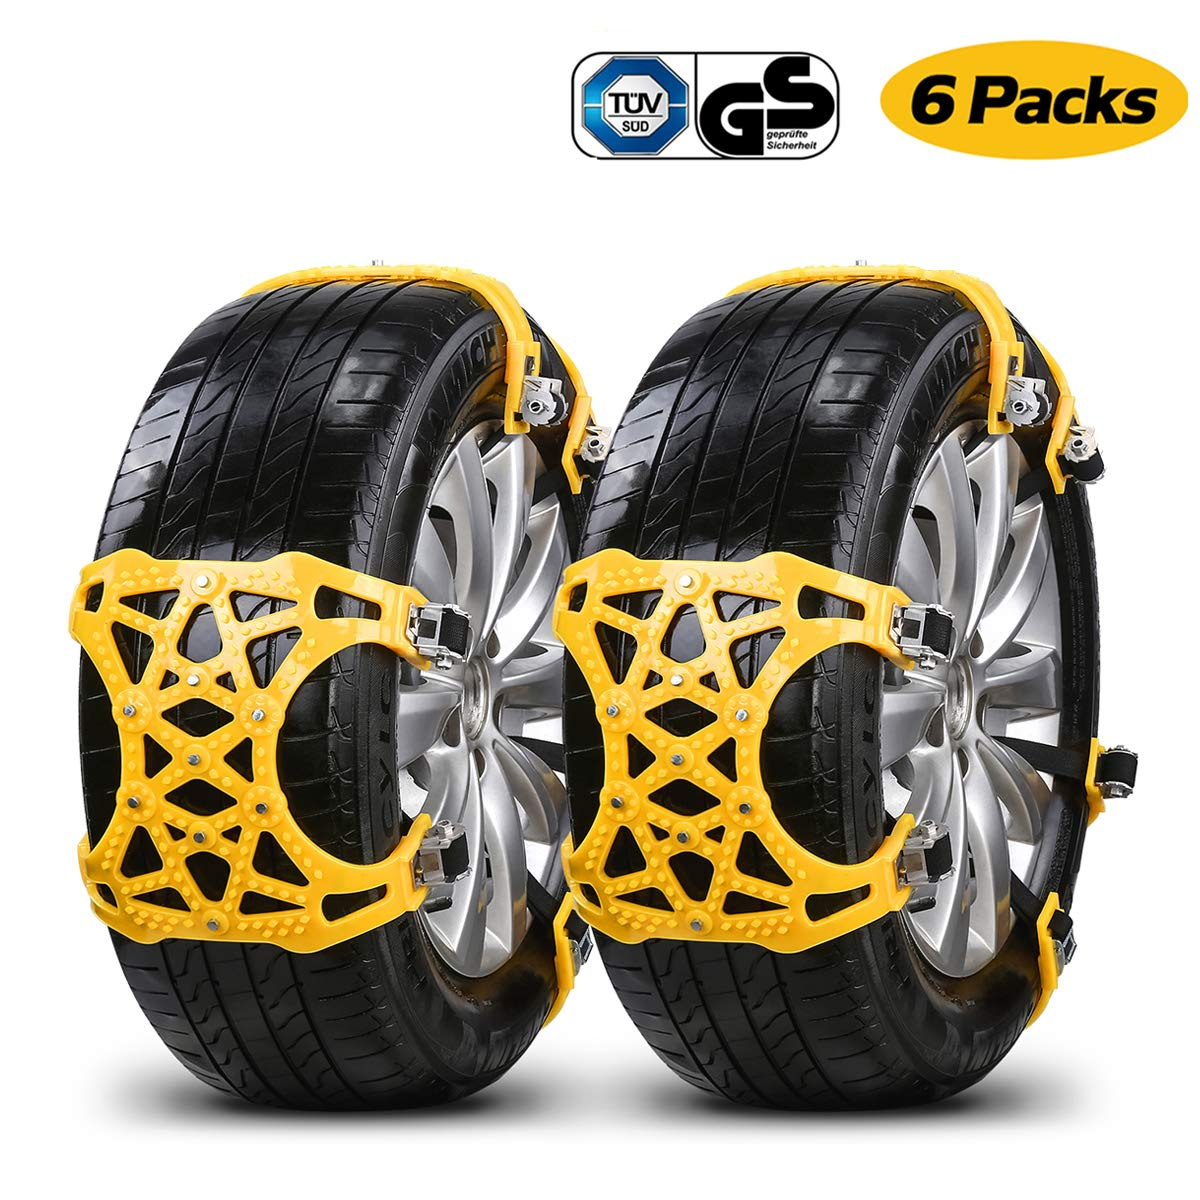 Sotical Snow Chain, 8pcs Anti-skid Adjustable Tire Wheel Emergency Solution Traction Chains Fits Chains for Car, Truck, Suv Roadway Snow Road Auto Safety Mud Outdoor Autocross Climbing Width 165-265mm zhuosilang